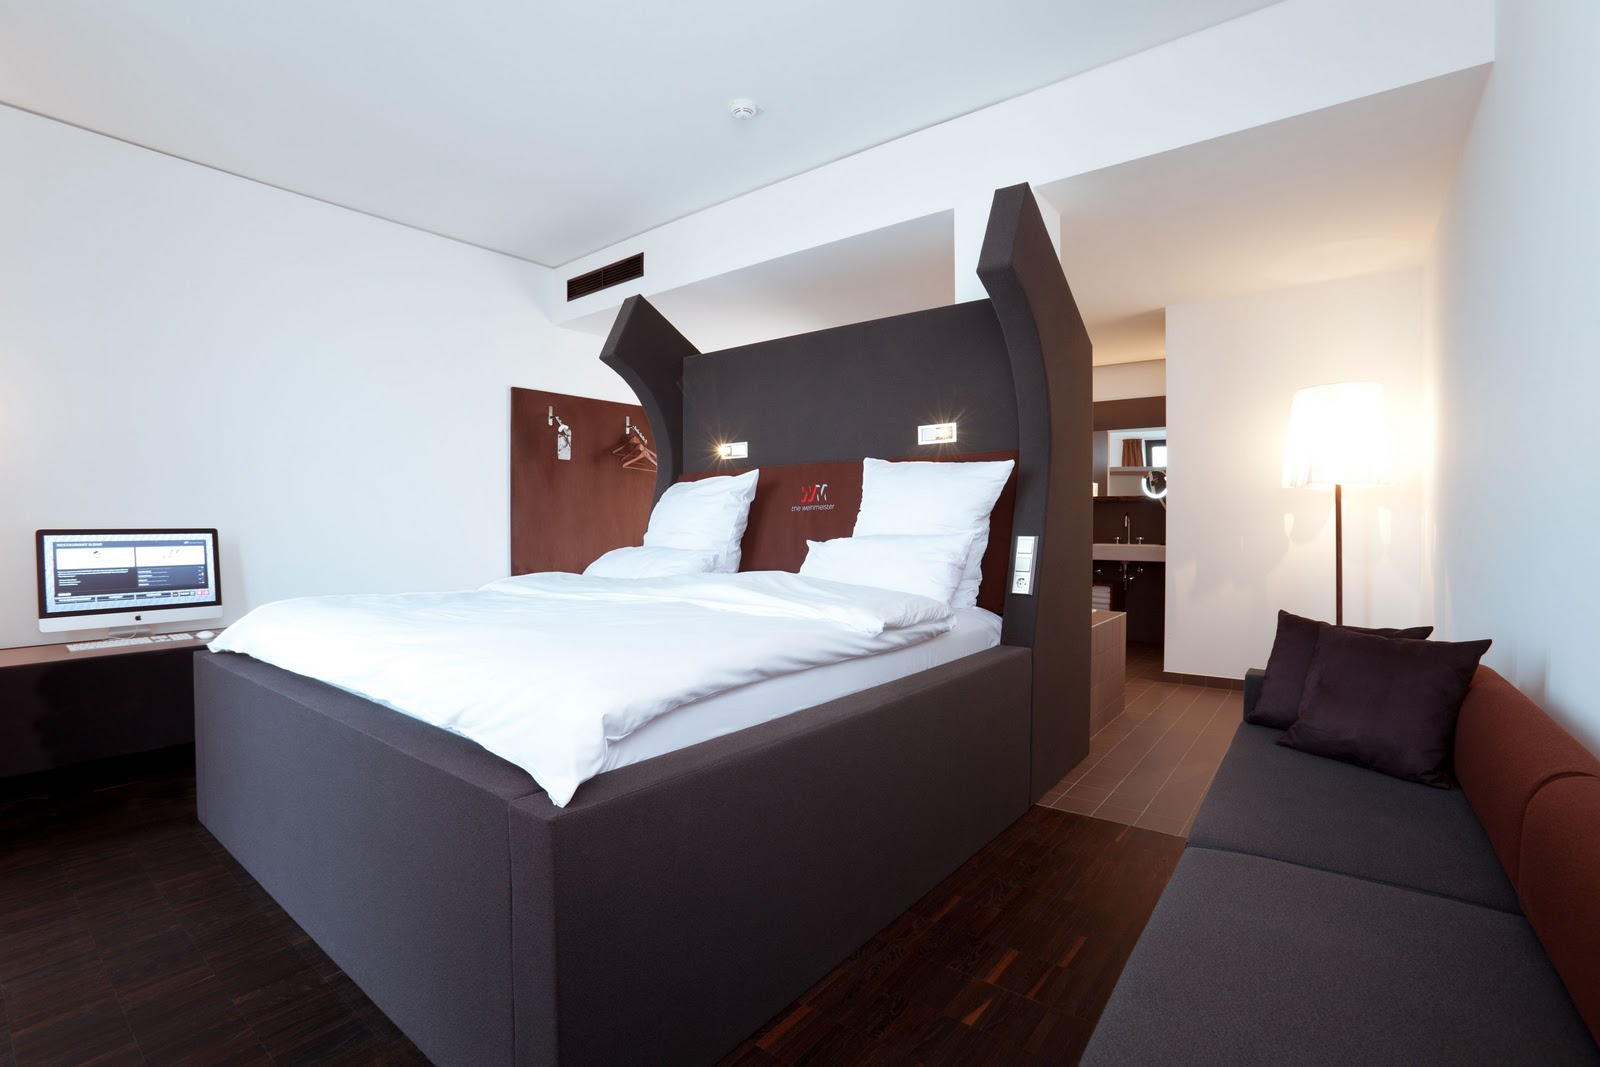 hotel paradiese die coolsten und besten design hotels in berlin. Black Bedroom Furniture Sets. Home Design Ideas